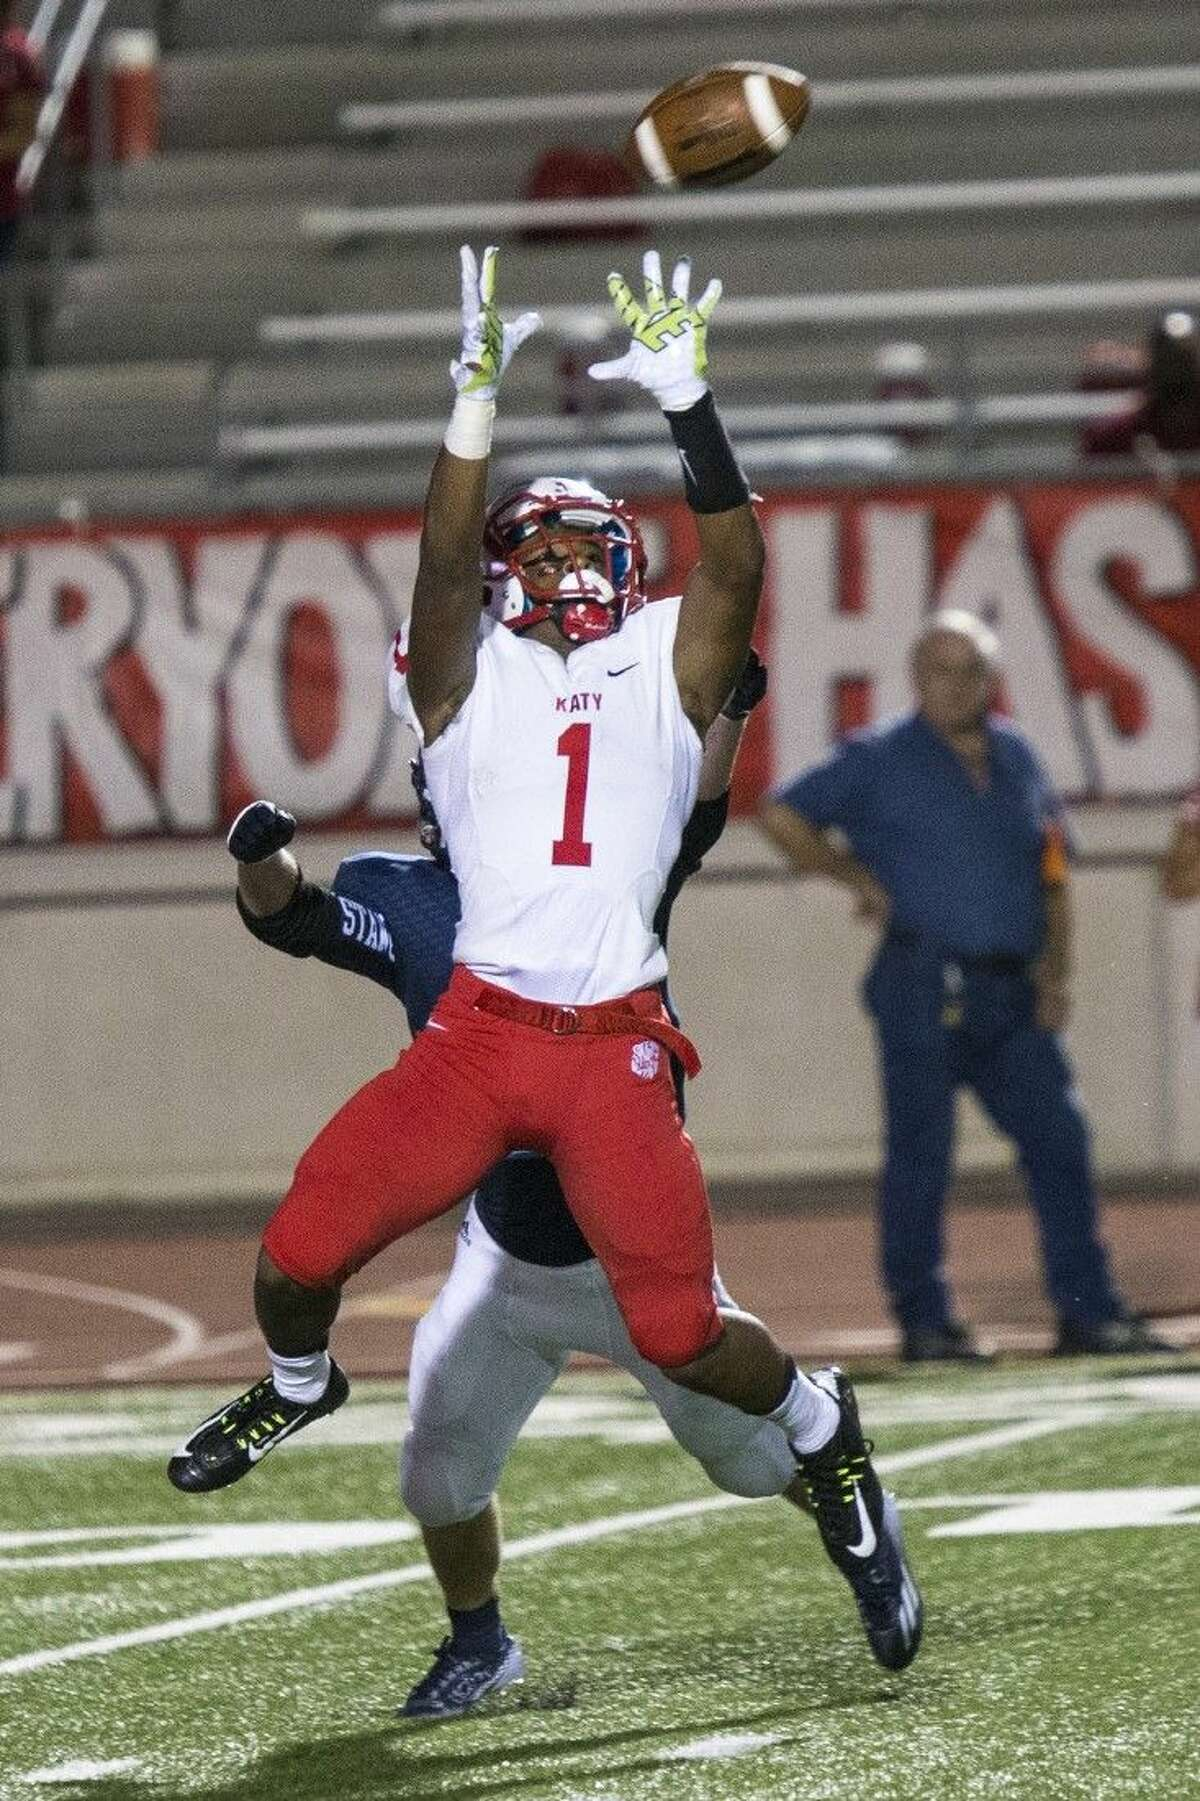 Staff photo by Andrew BuckleyKaty wide receiver Tony Mullins leaps to catch a pass during the Tigers' 31-0 win against Kingwood on Aug. 29 at Turner Stadium. Katy added a 55-0 shutout of Travis the following week.